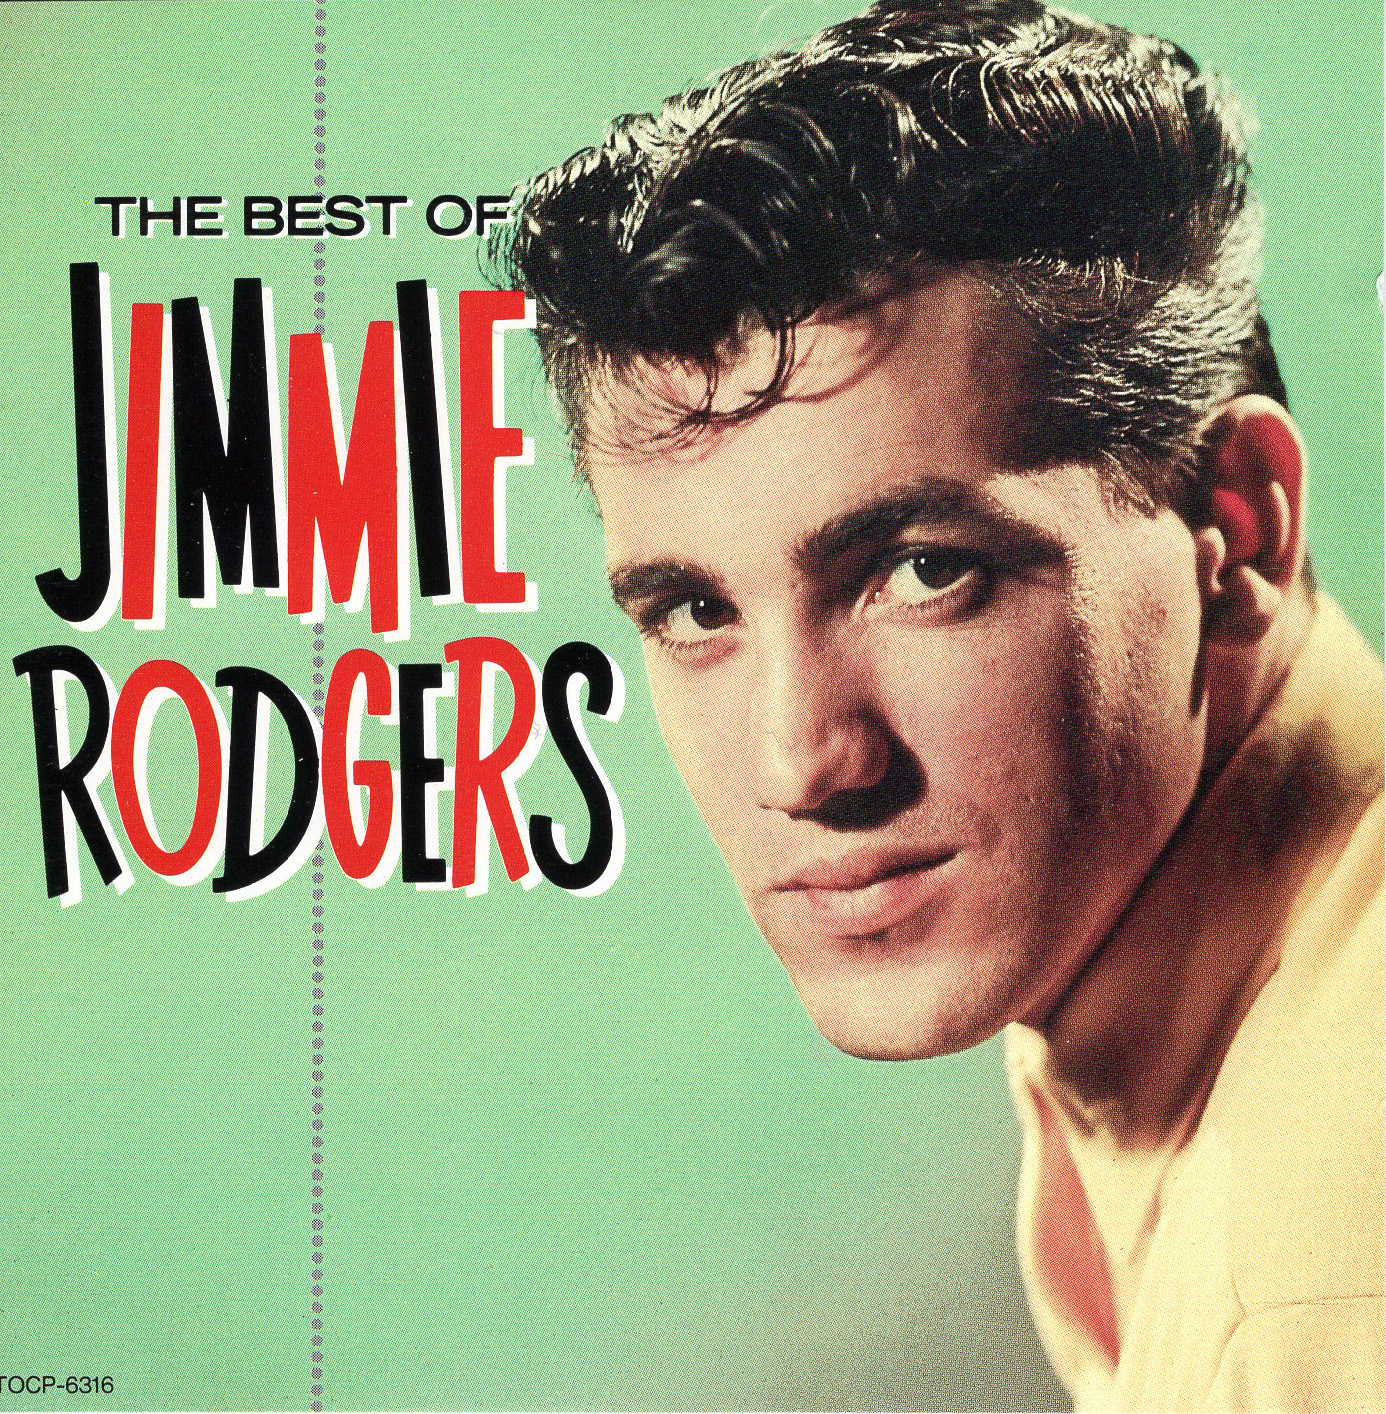 """The Best of Jimmie Rodgers"" Jimmie Rodgers"